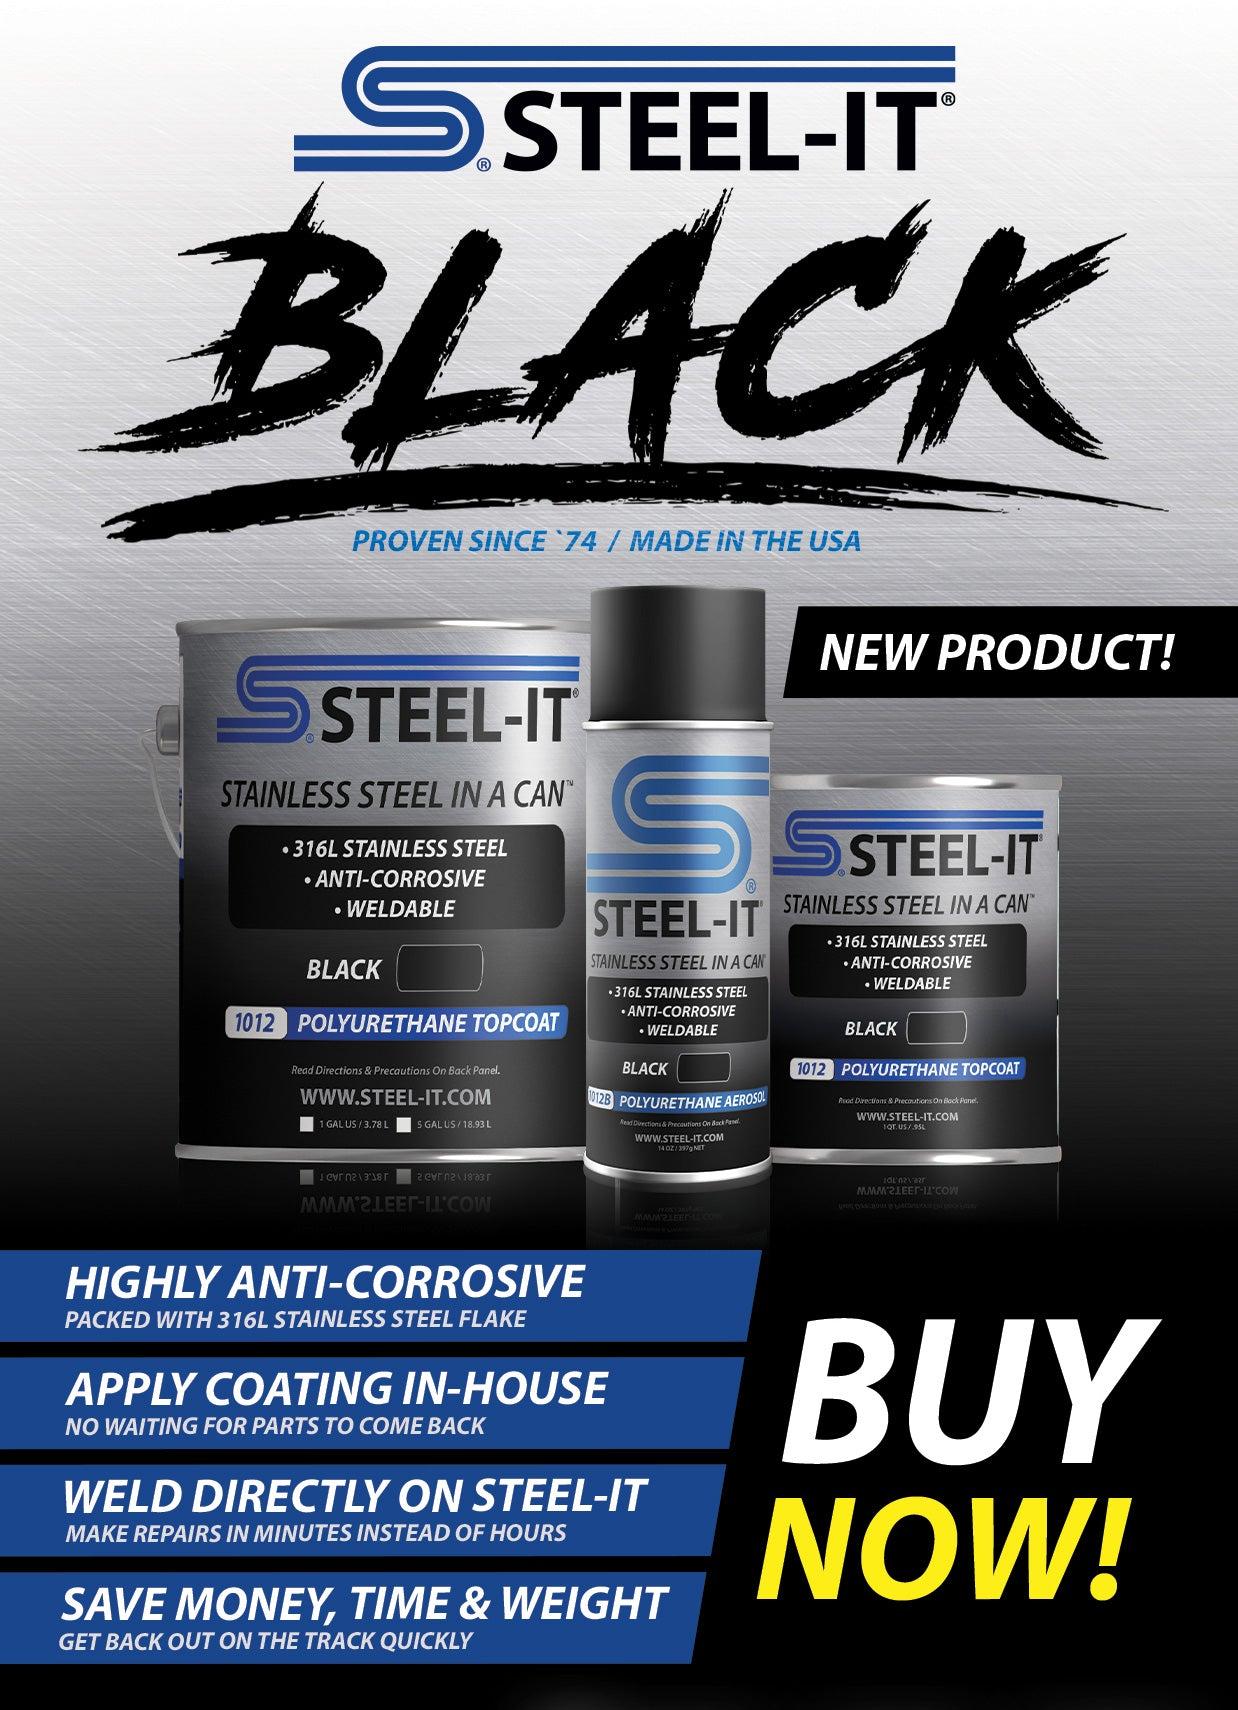 STEEL-IT Black, Polyurethane Coating, Paint, Metal Paint, Coatings, Automotive Paint, Stainless Steel